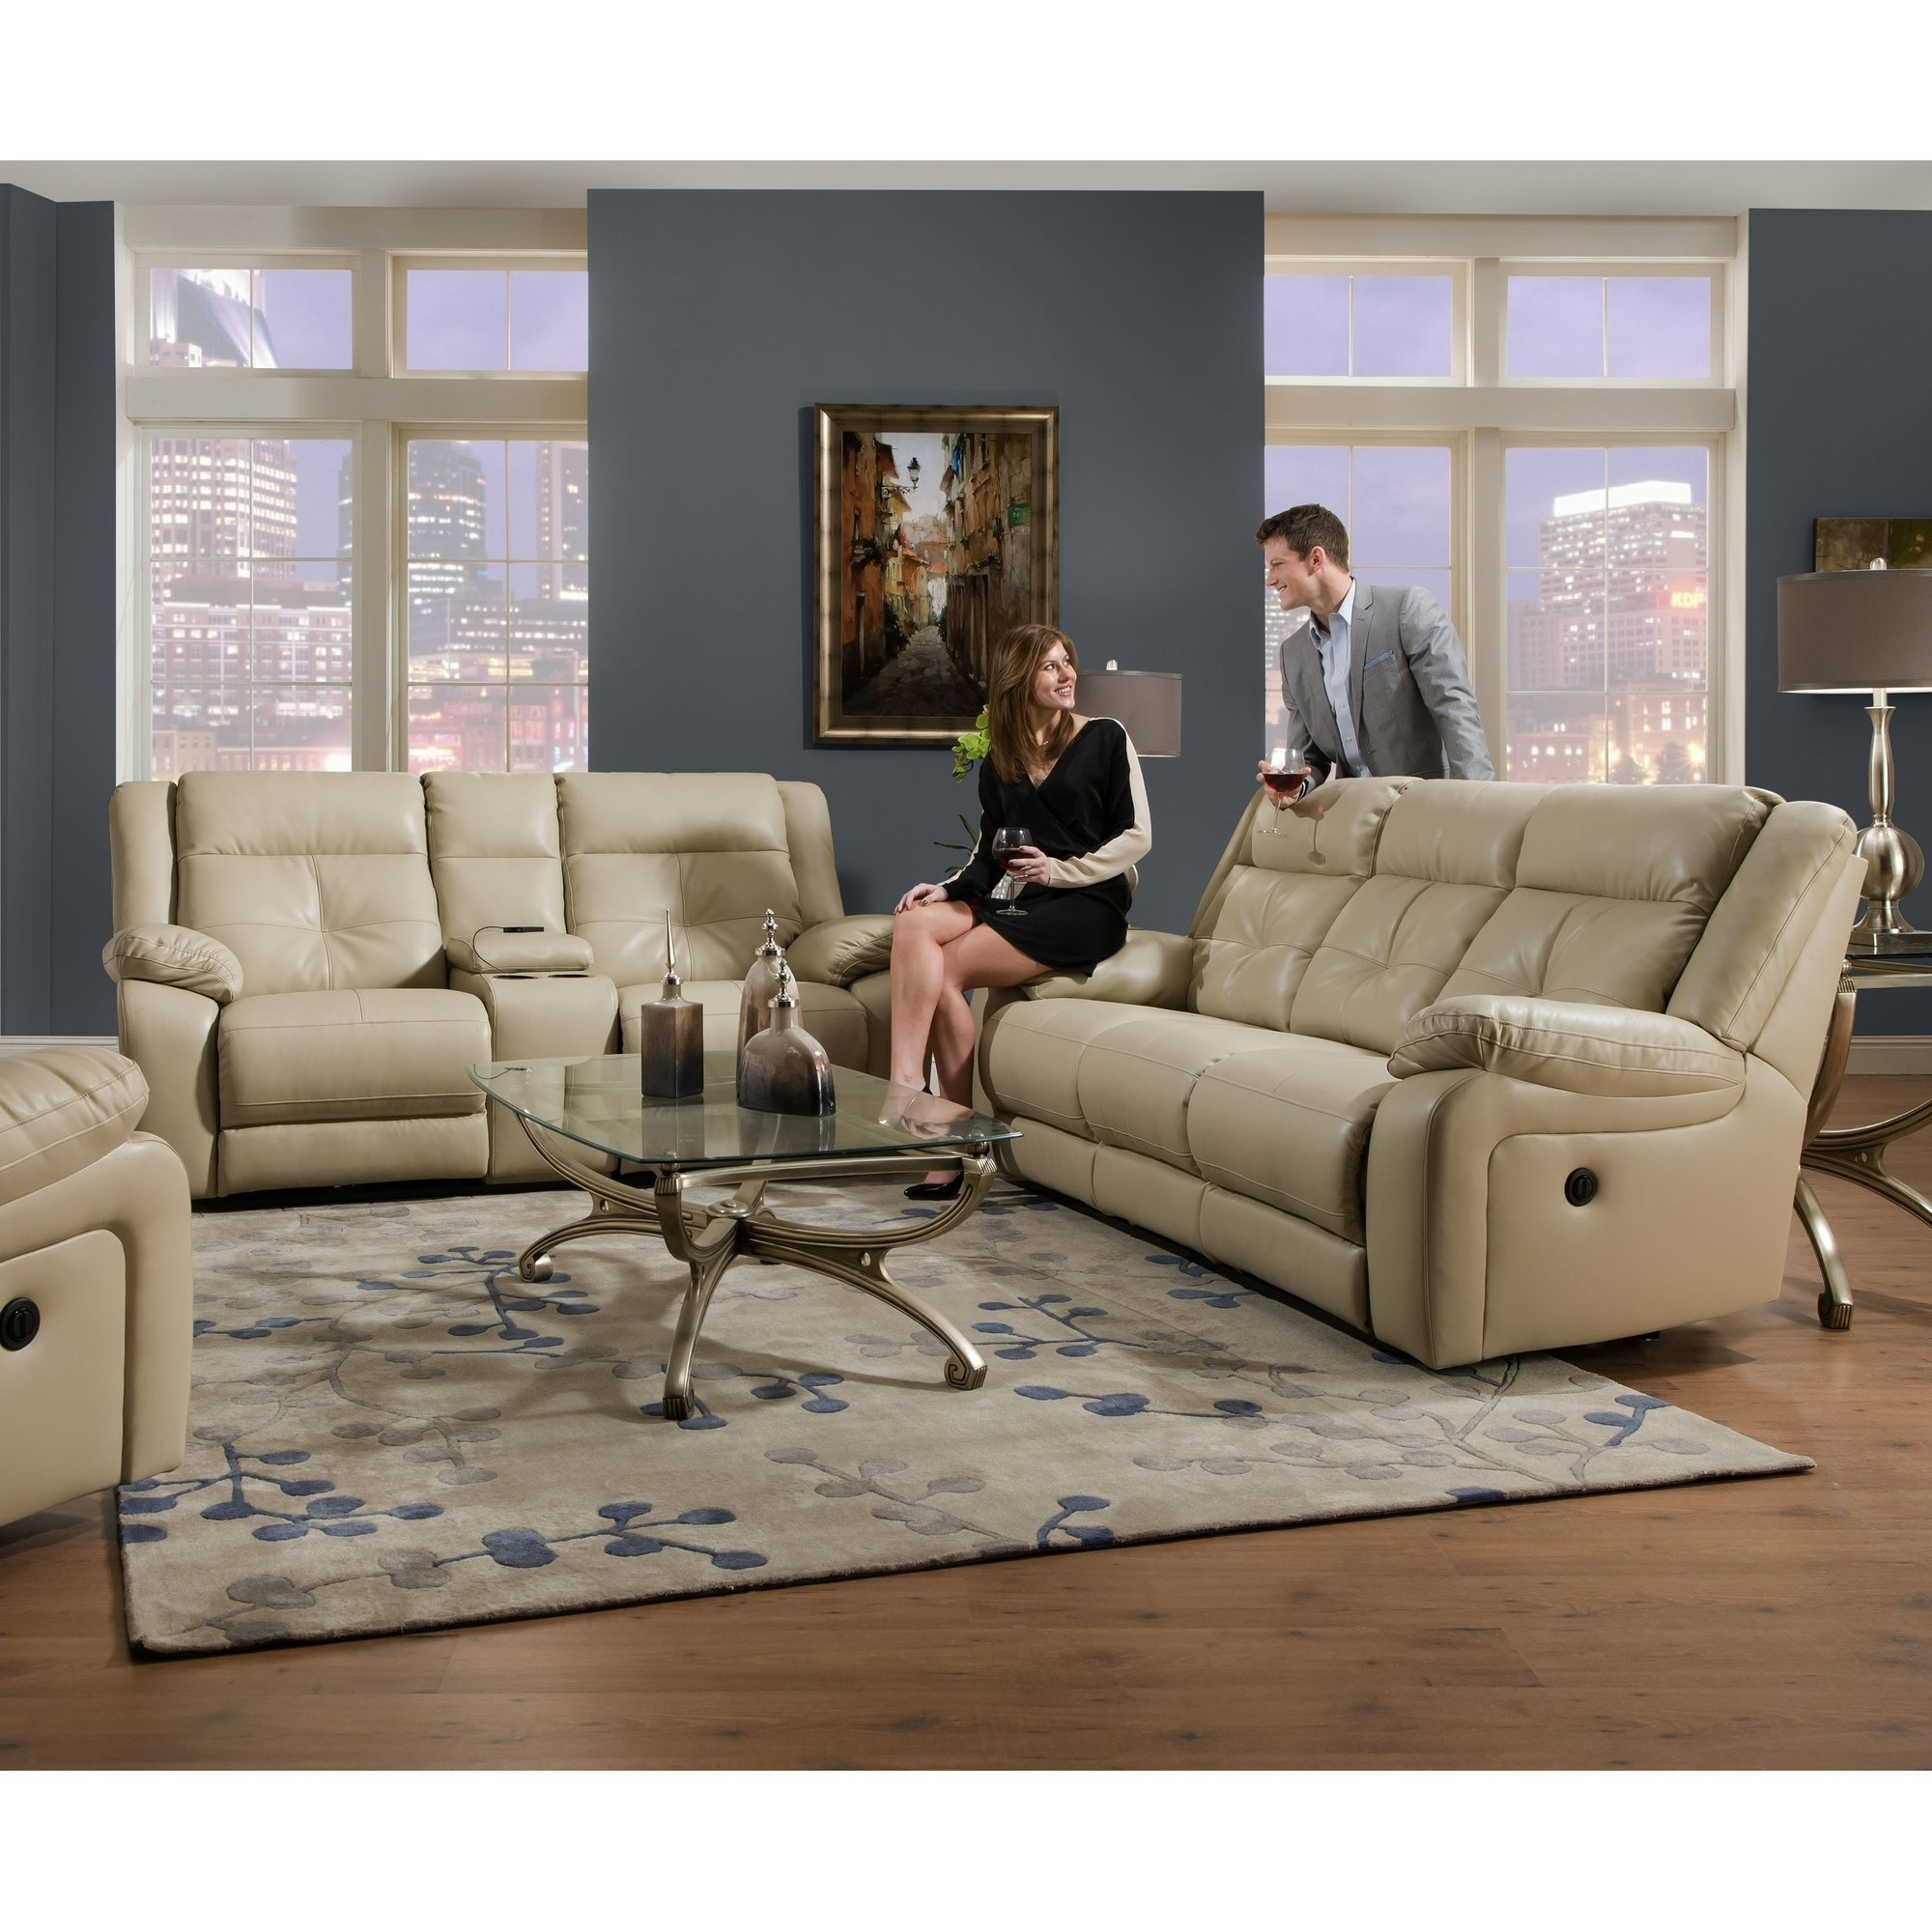 Simmons Sectional Sofa Kmart • Sectional Sofa In Kmart Sectional Sofas (View 6 of 10)